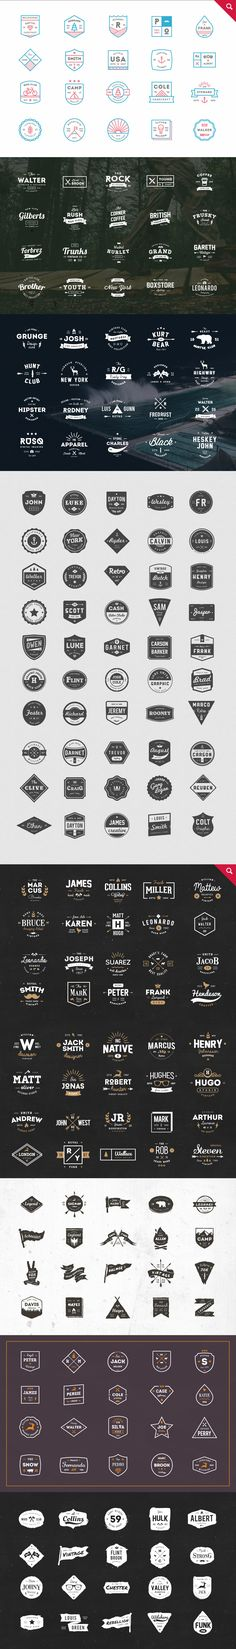 Buy and sell handcrafted, mousemade design content like vector patterns, icons, photoshop brushes, fonts and more at Creative Market.